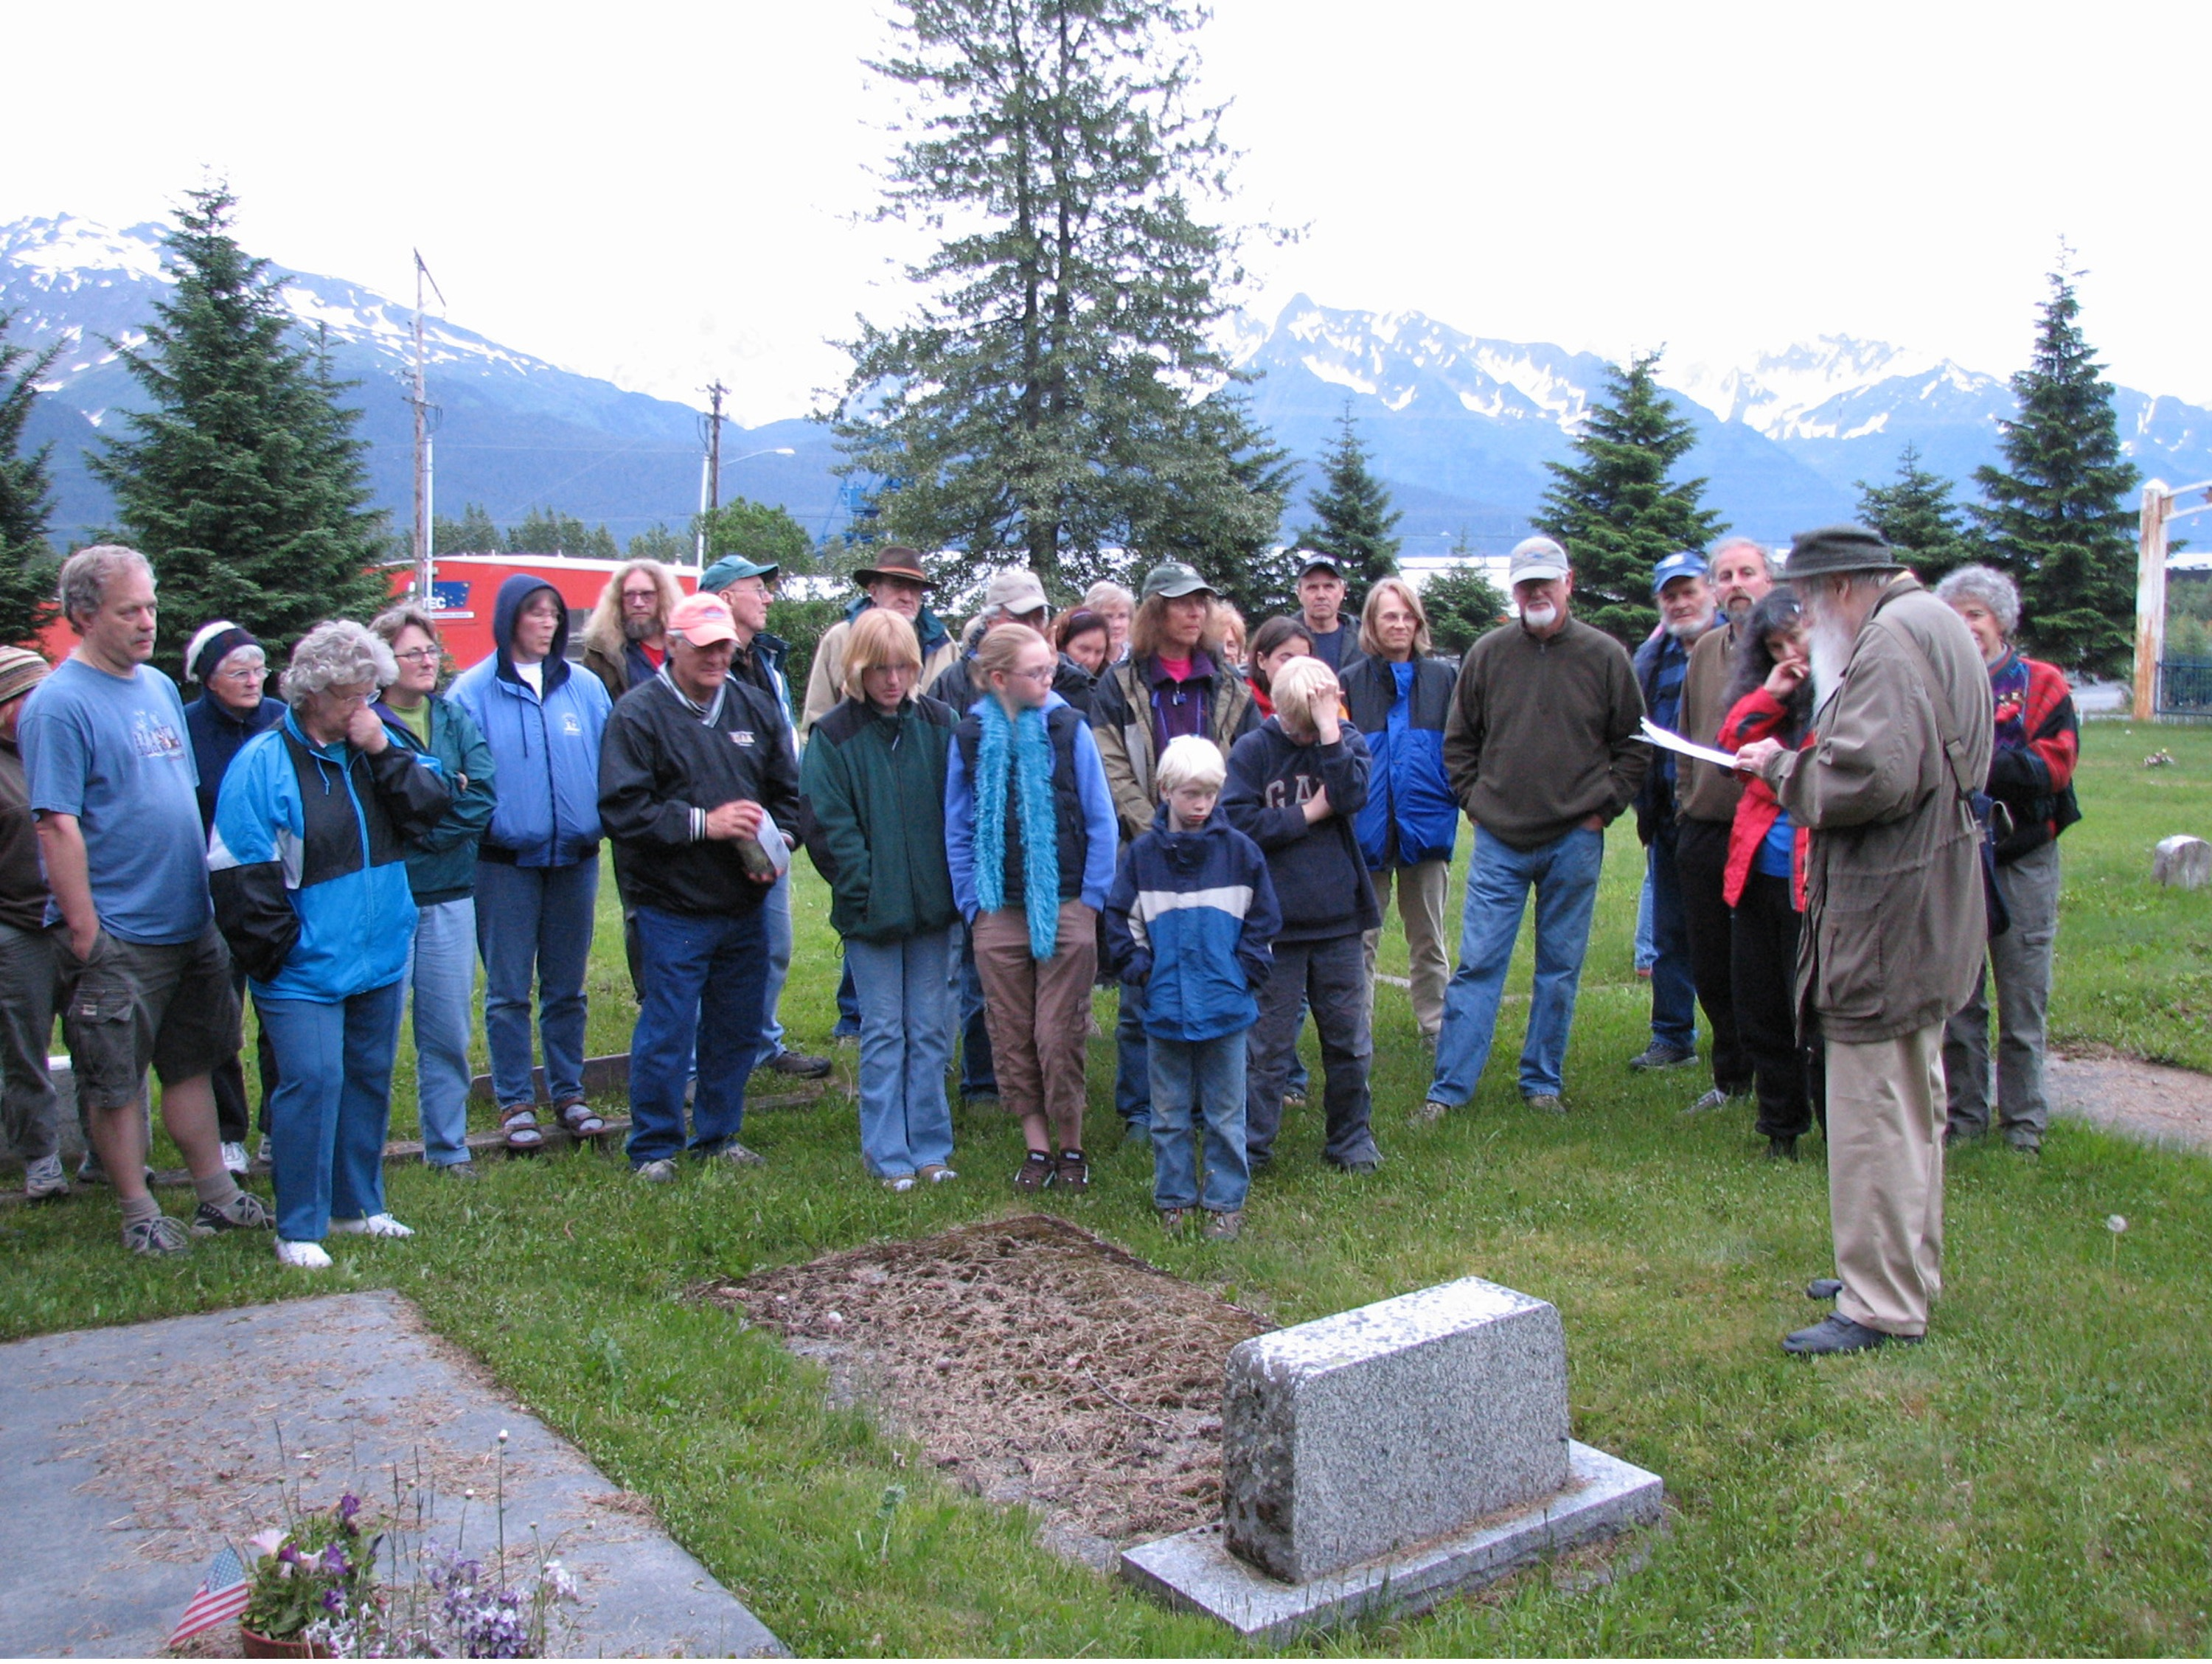 Summer Solistice Cemetery Walk participants learn about important historical figures buried there.